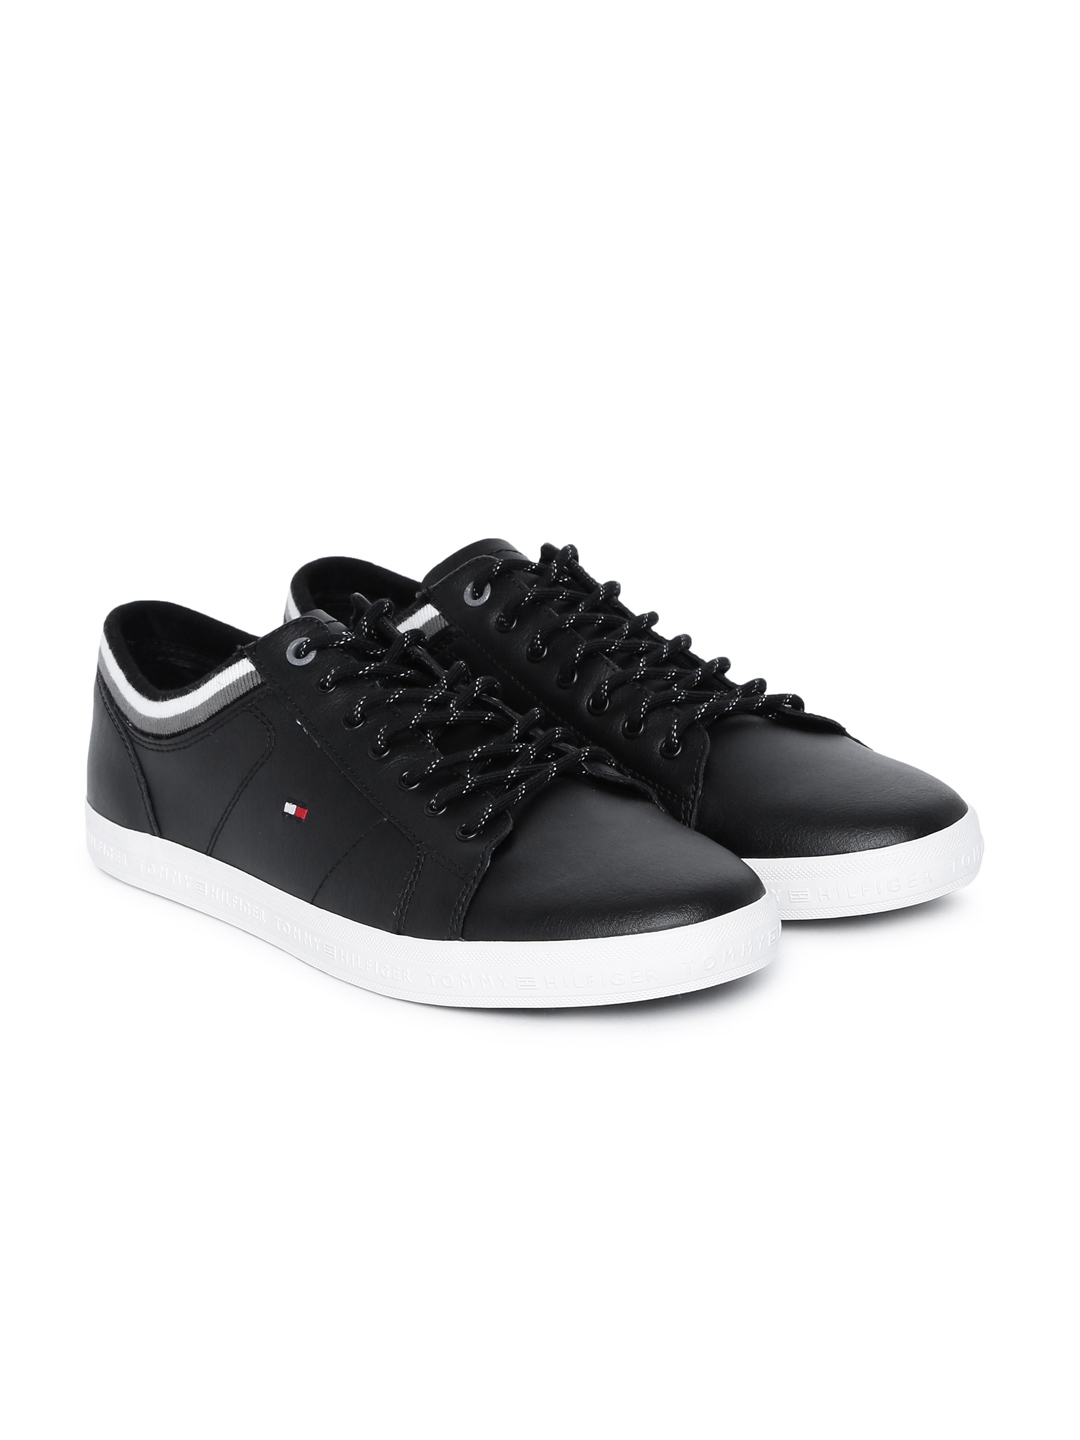 4fd617934e21 Buy Tommy Hilfiger Men Black Leather Sneakers - Casual Shoes for Men ...